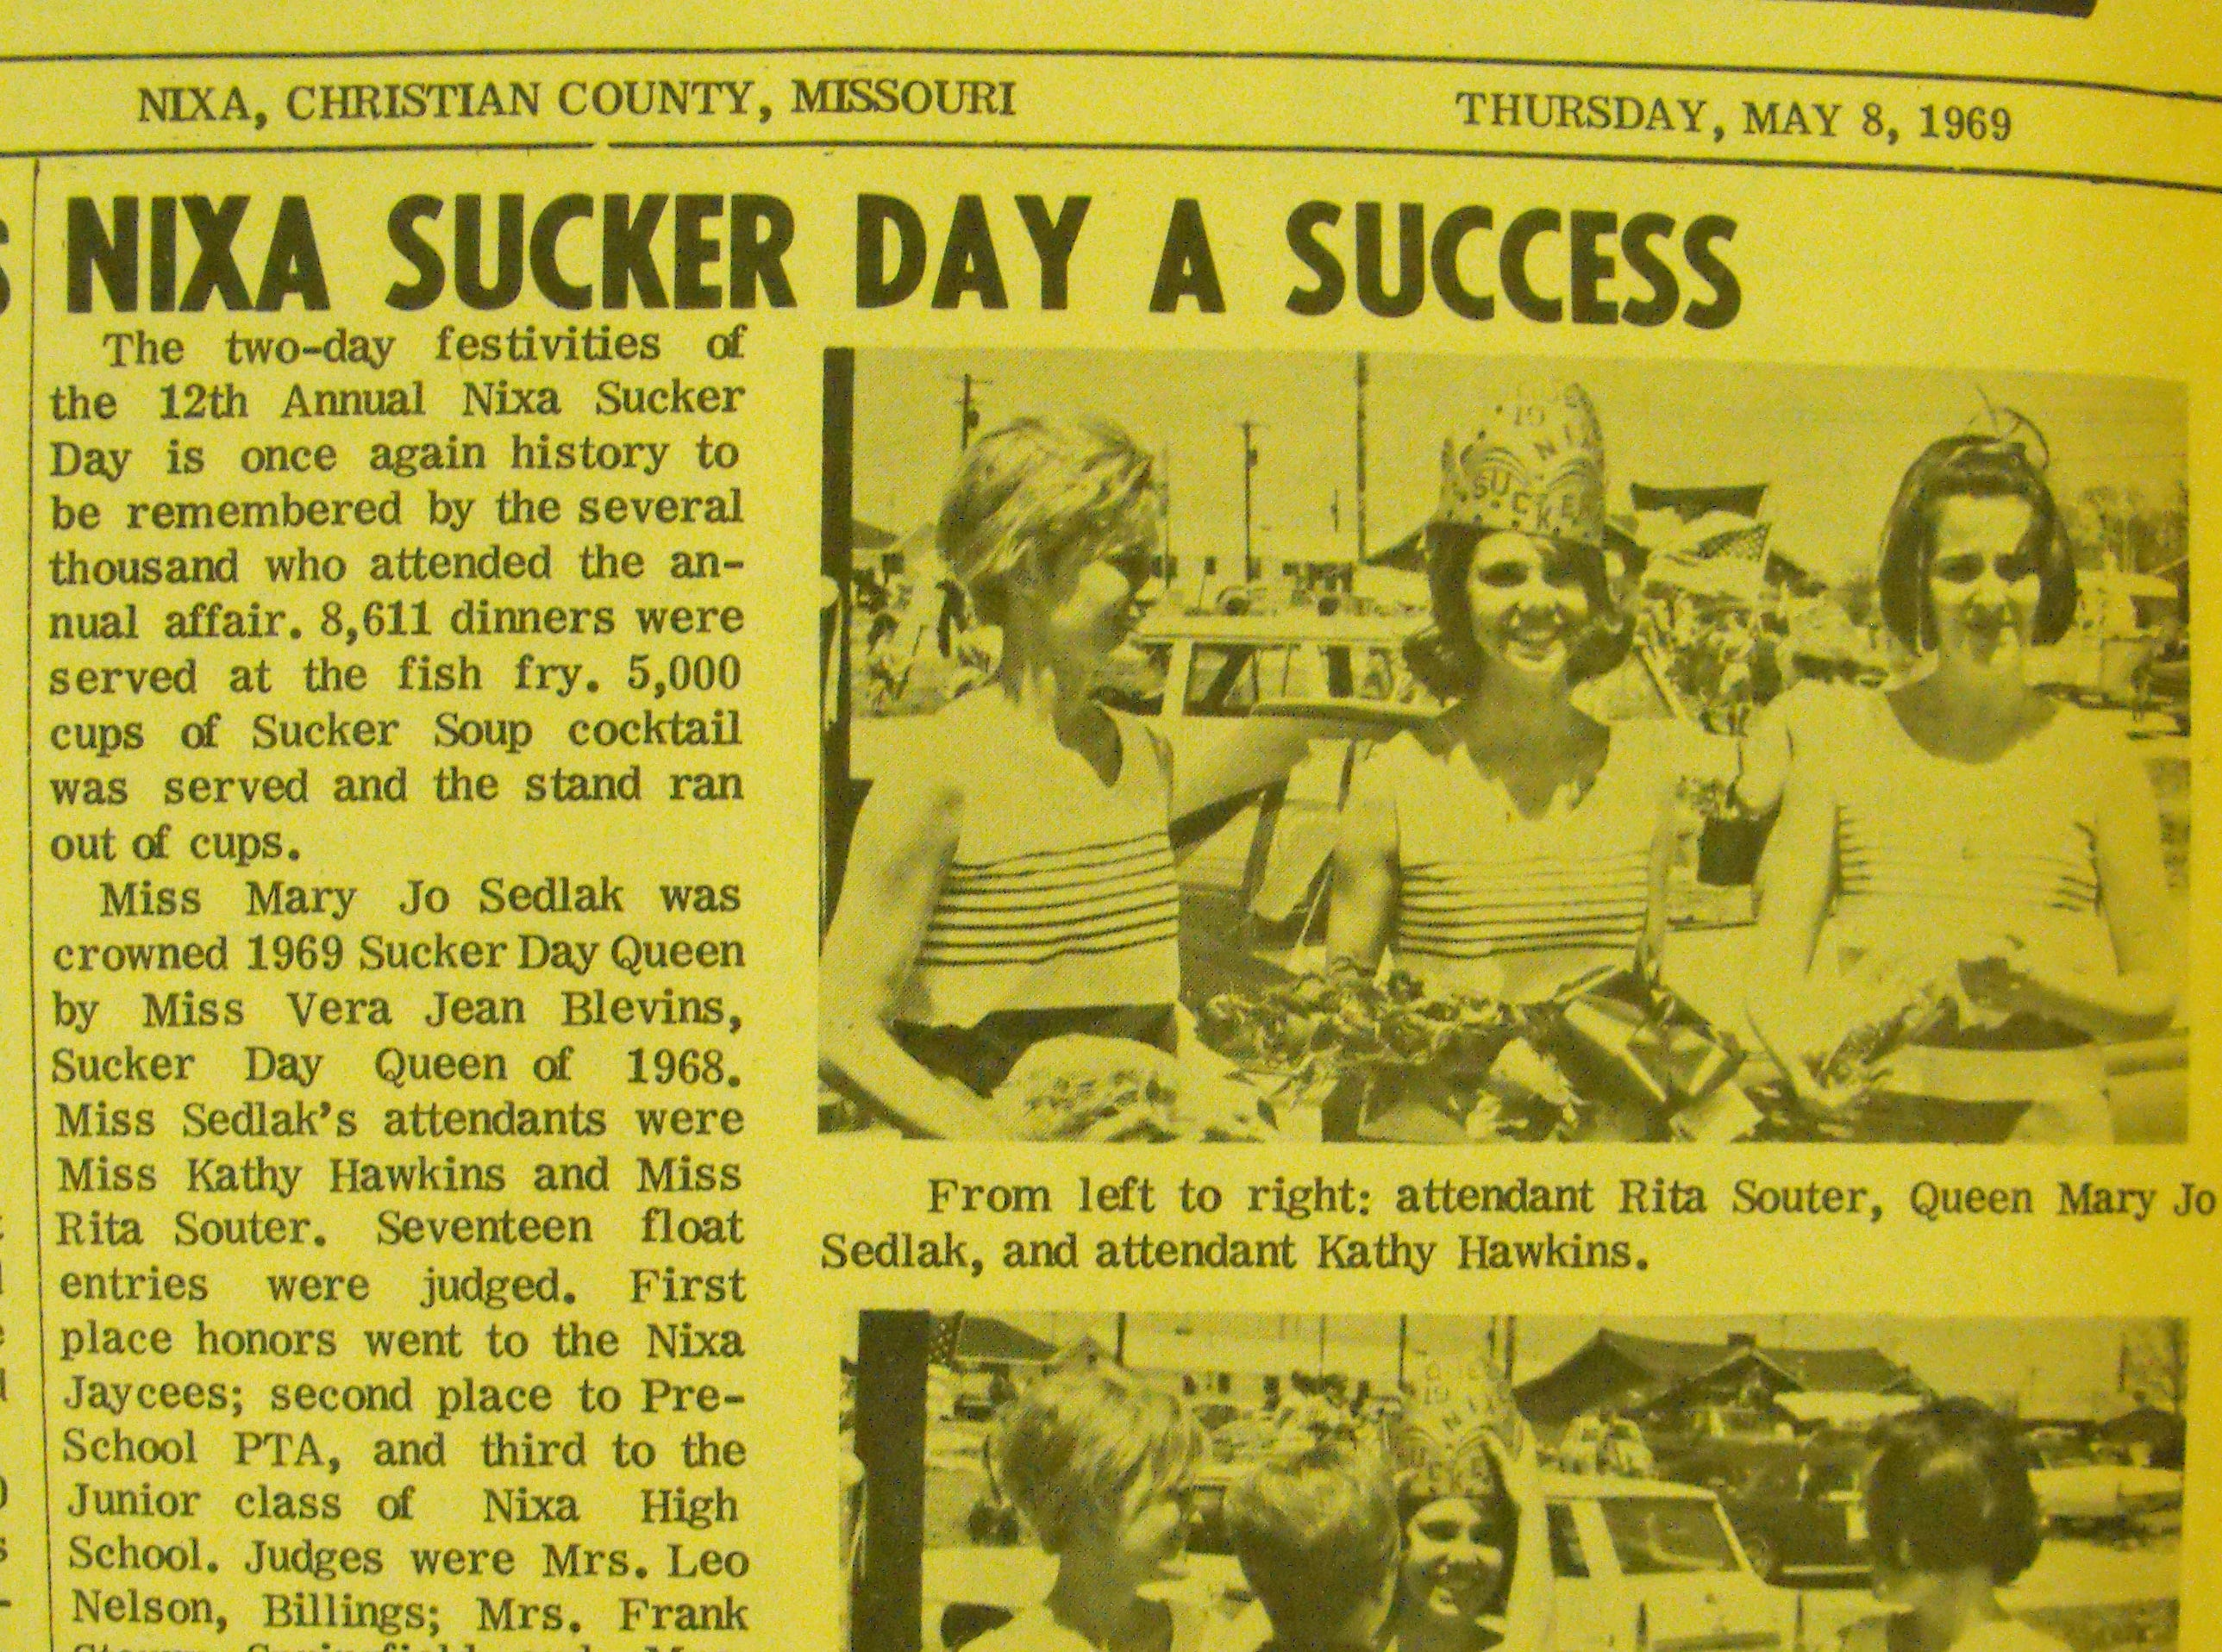 A 1969 news clipping from the city of Nixa's collection of vintage Sucker Days photos.